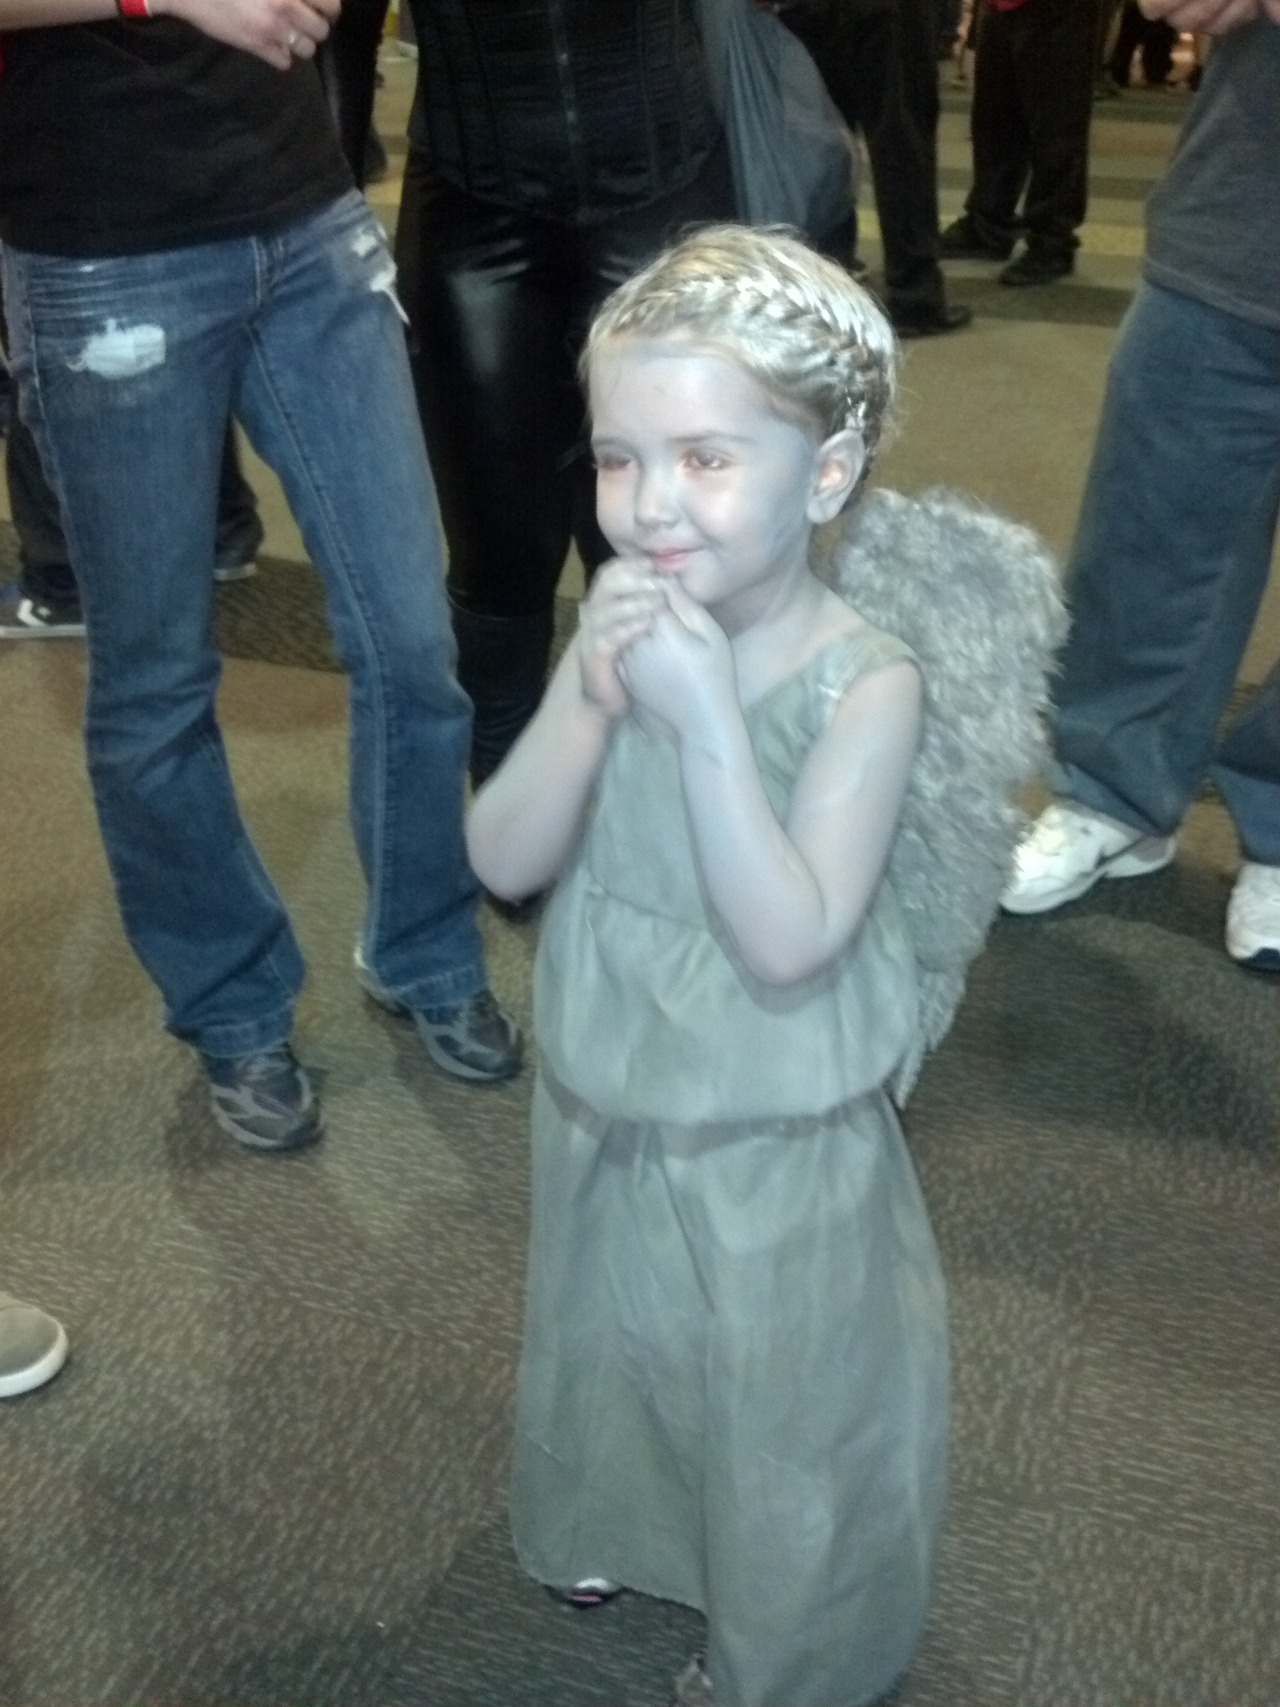 doctorwho:  Most adorable weeping angel I couldn't blink if I wanted to thegreatamon:  Little Weeping Angel at Denver Comic Con 2012.  She was ADORABLE!!! <3 When you went up to her and her parents and you asked if you could take a picture she would stand up straight, and slowly bring her hands up and cover her eyes. After you were done with the pictures she'd lower her hands and just SMILE so big.  Omg it was the cutest thing ever!!!    Awwww!!! ^_^